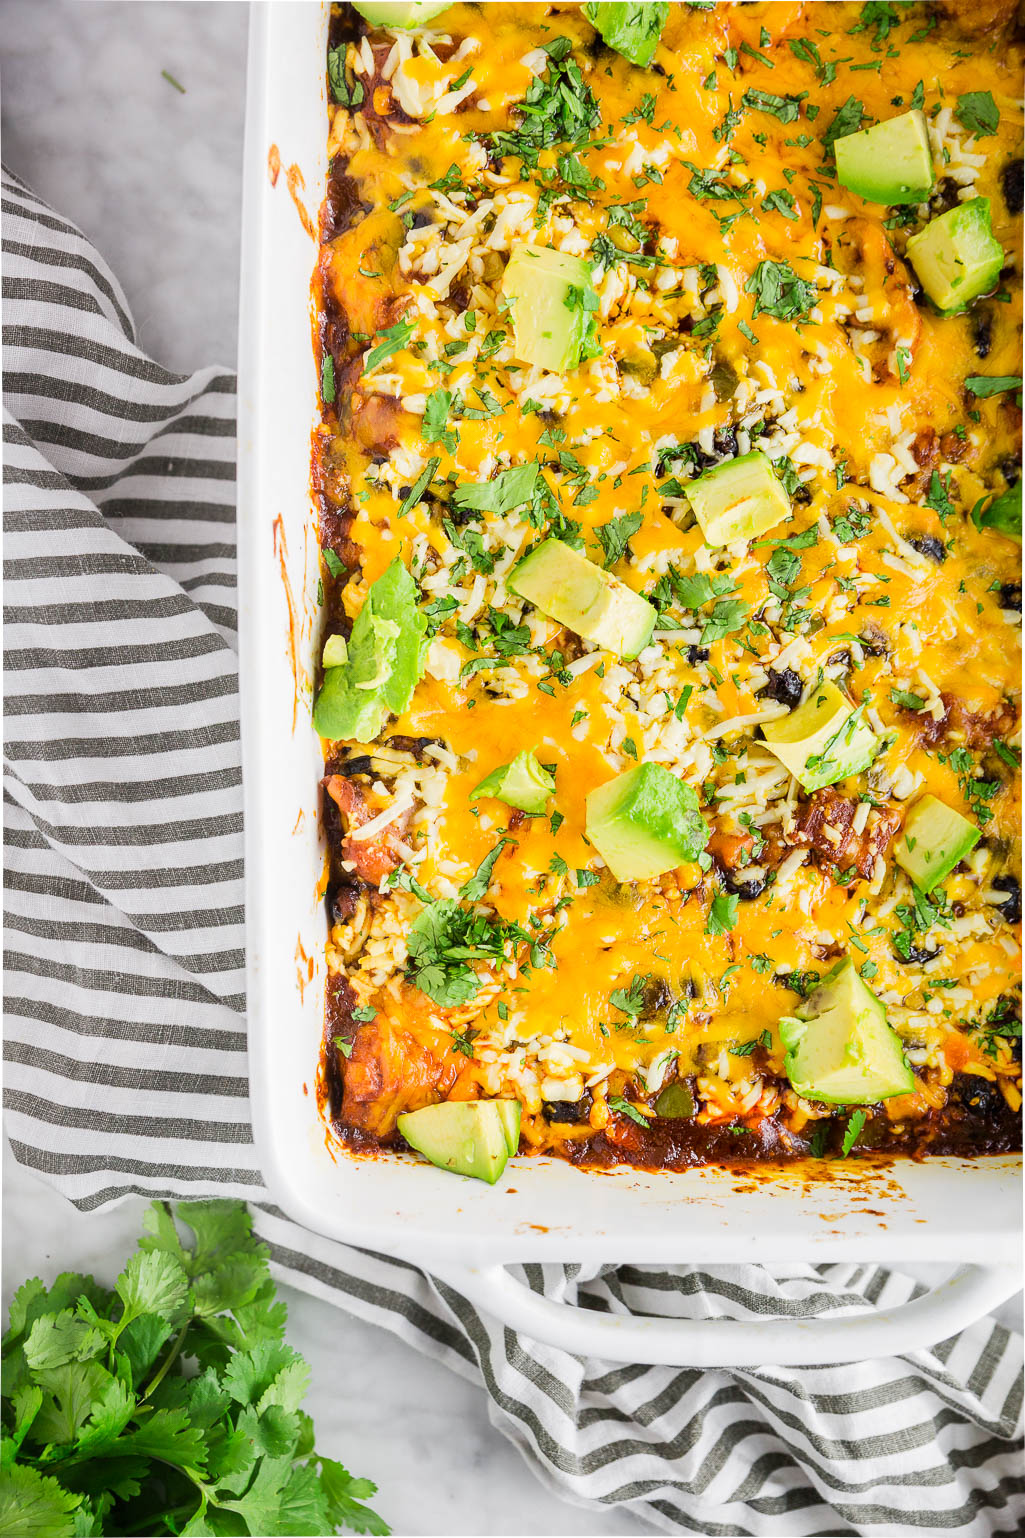 A white baking dish filled with chicken enchilada casserole topped with shredded cheese, avocado slices, and chopped cilantro.